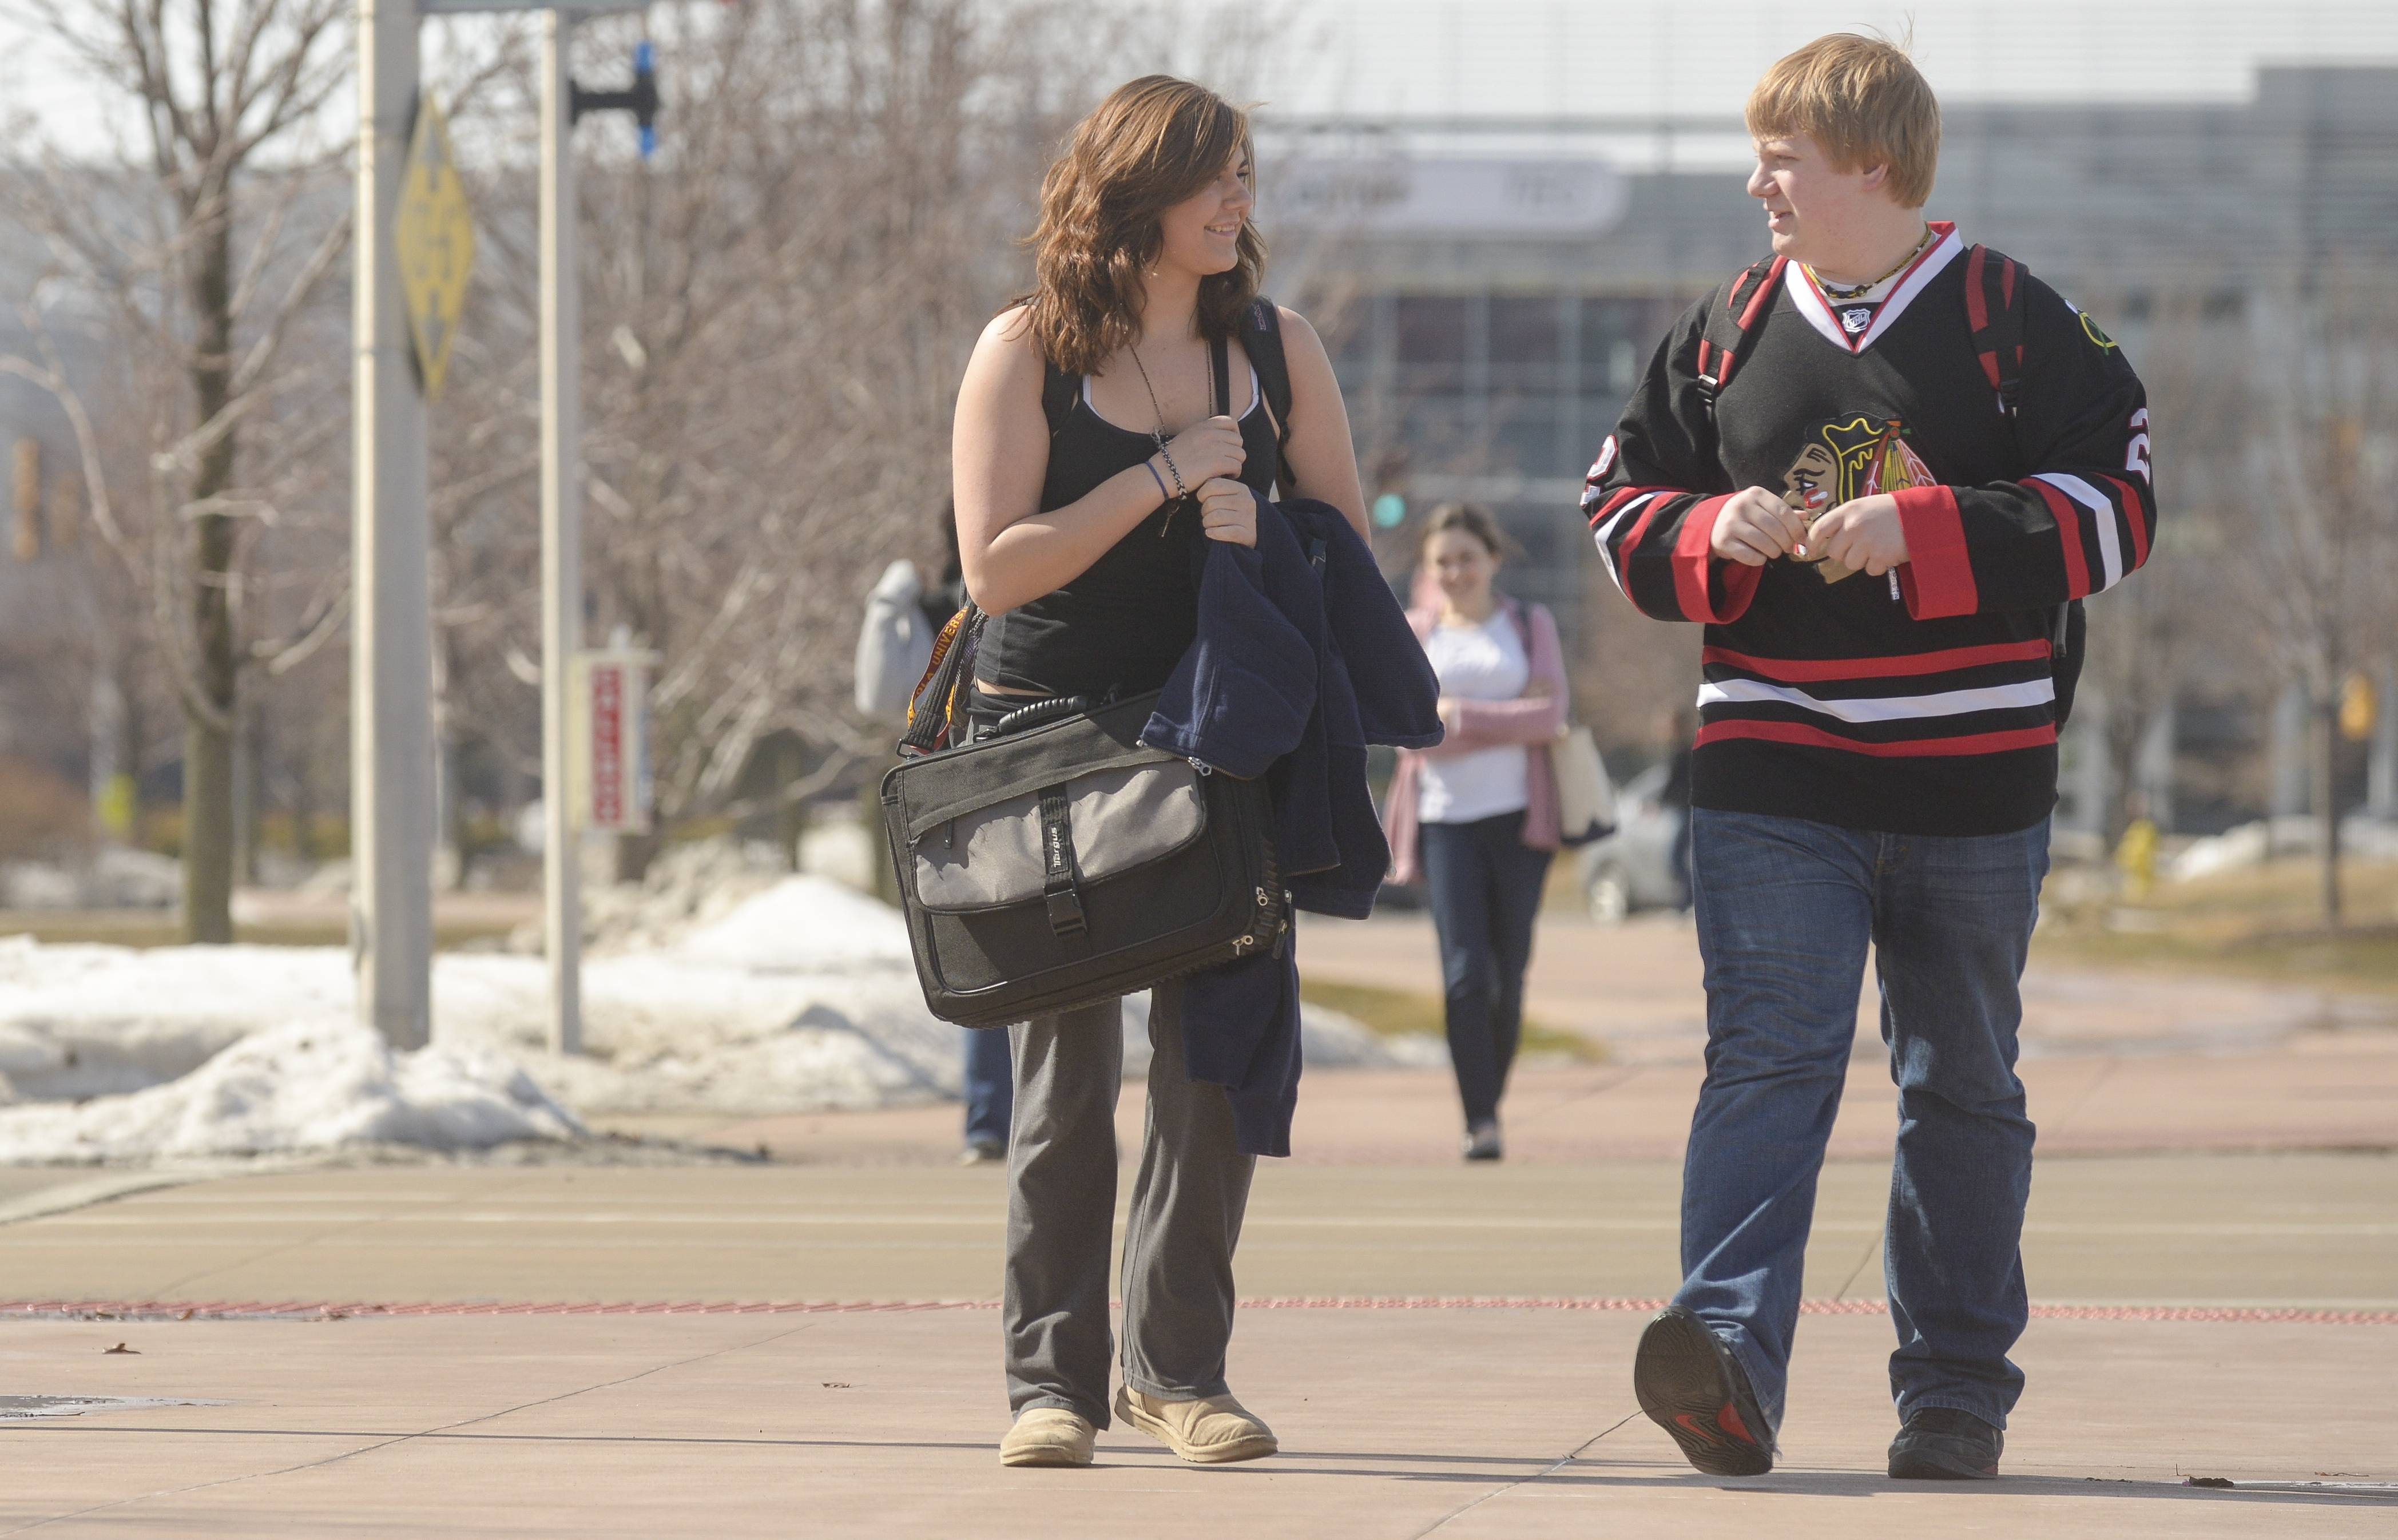 College of DuPage students Ashley Stelmack of LaGrange Park and Corey Petric of Naperville forgoing wearing jackets or even long sleeves for Stelmack as the temperatures rise into the low 50s Monday.